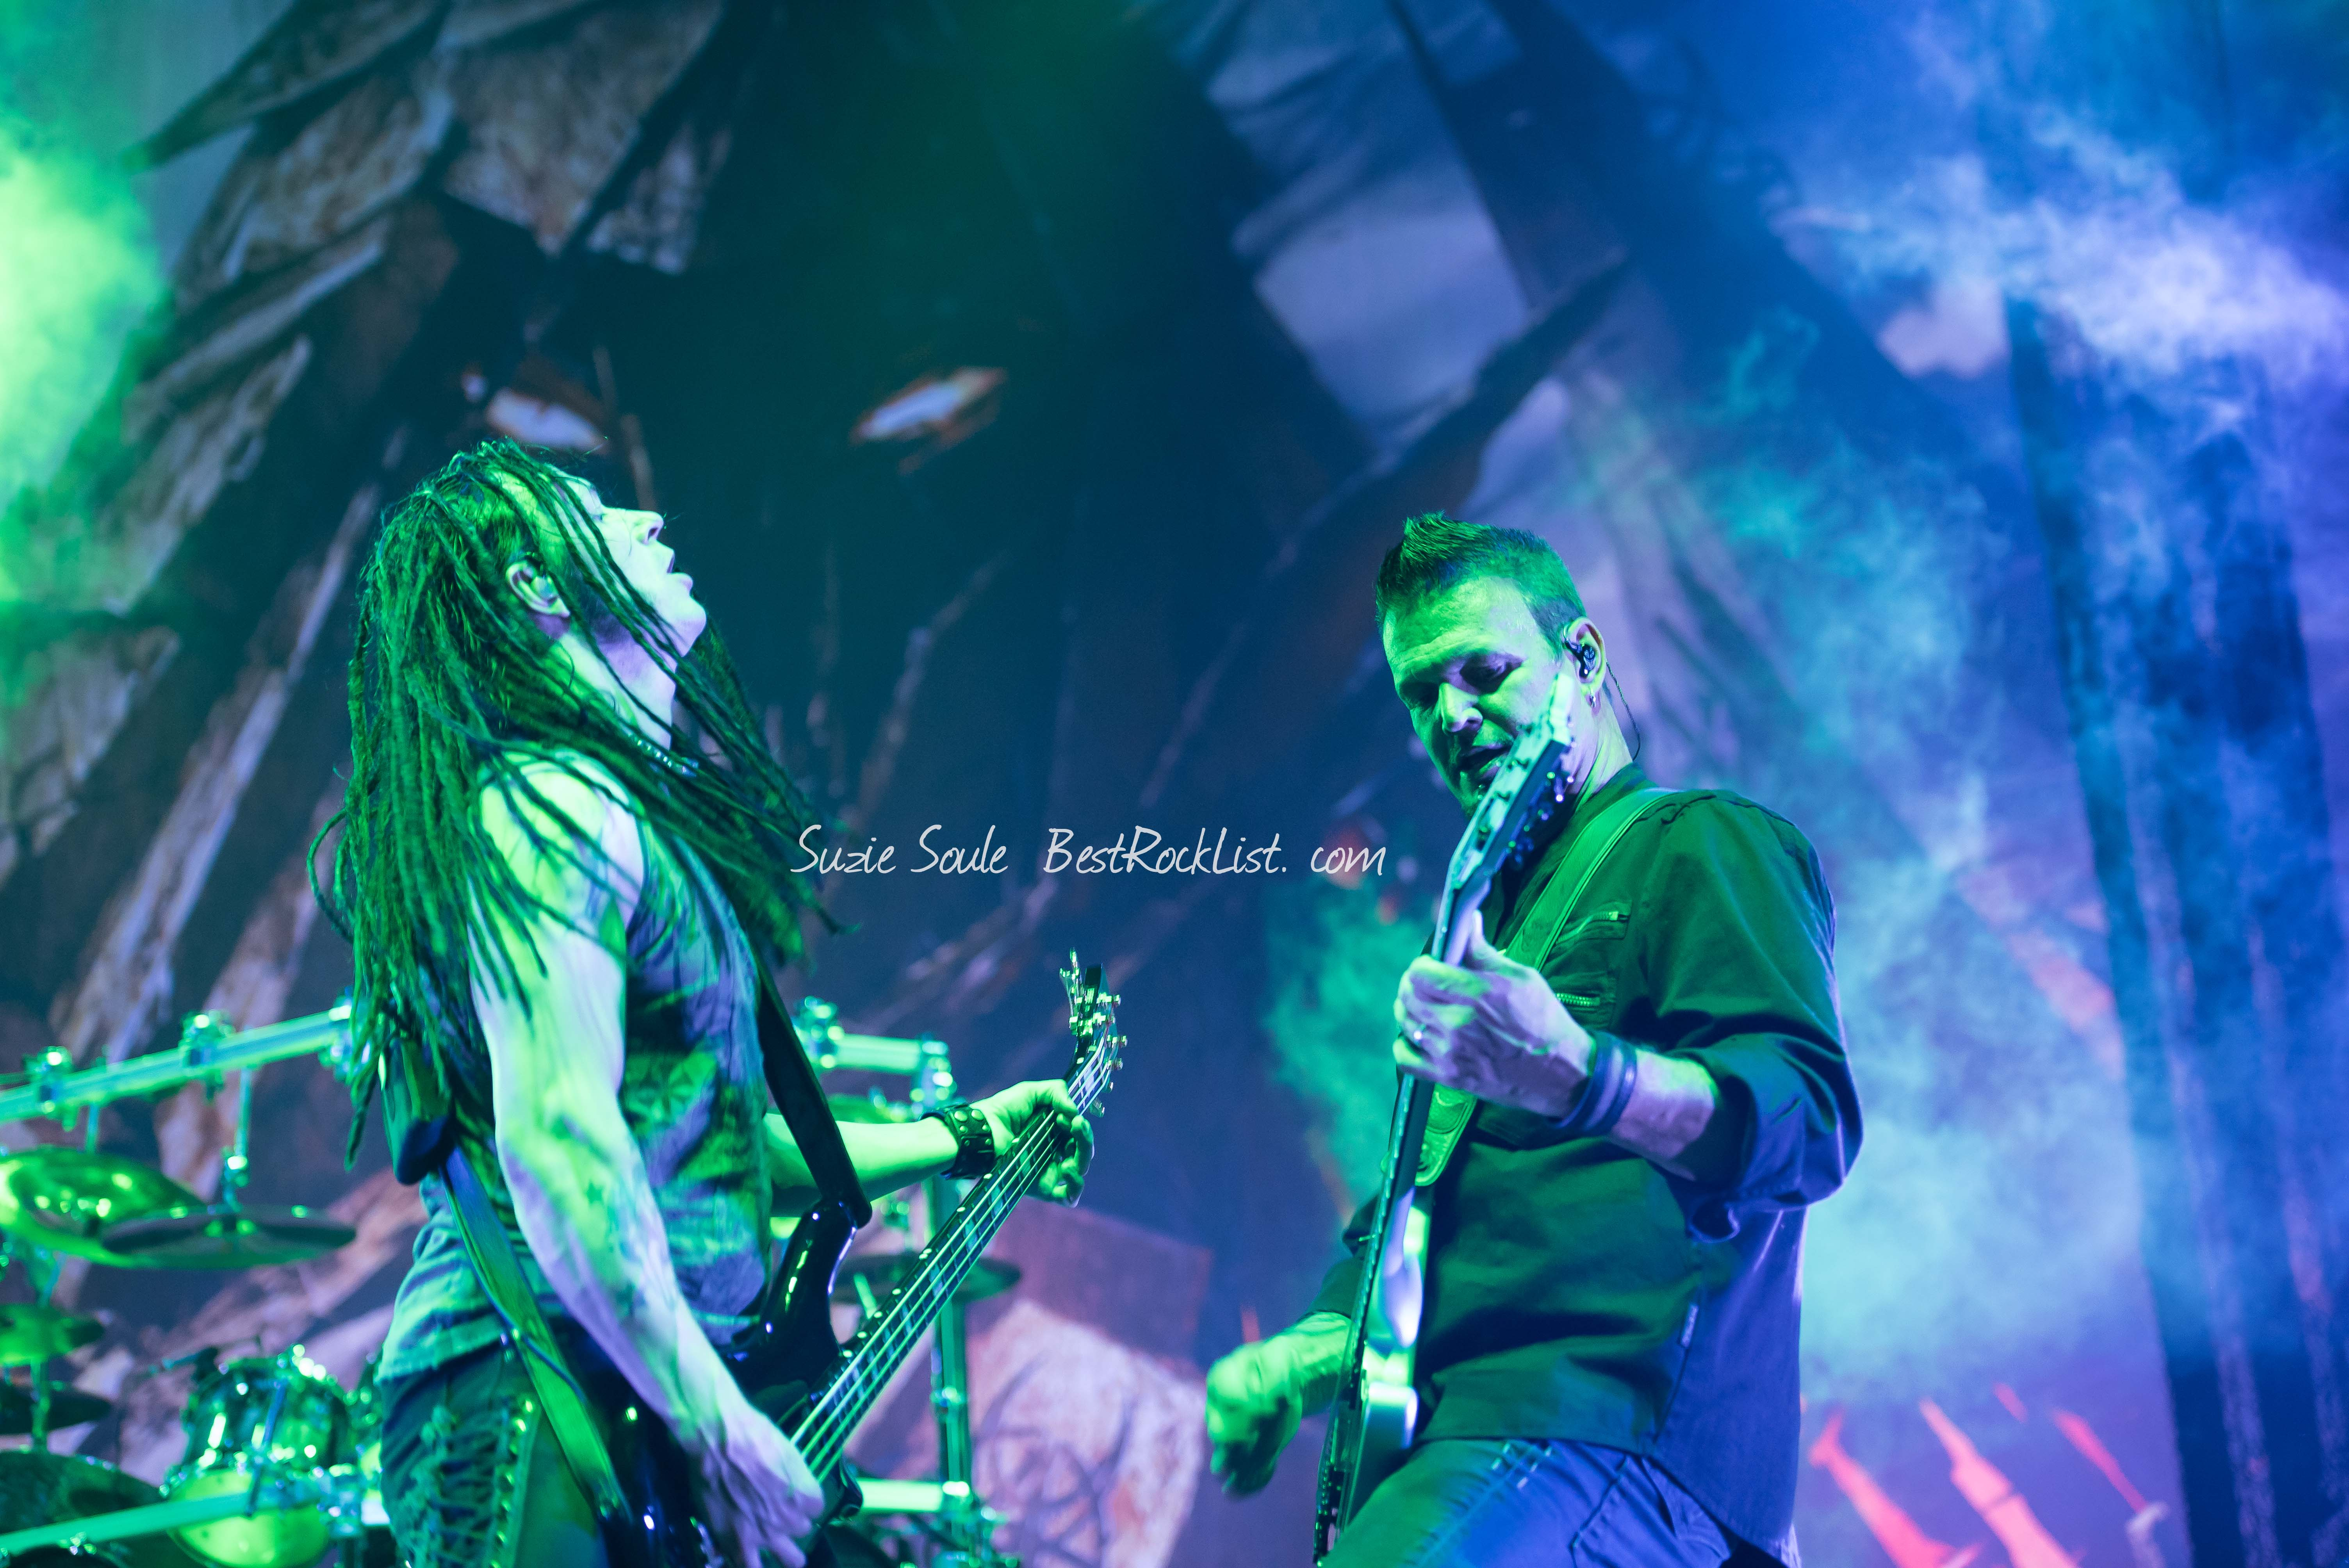 John Moyer and Dan Donegan of Disturbed